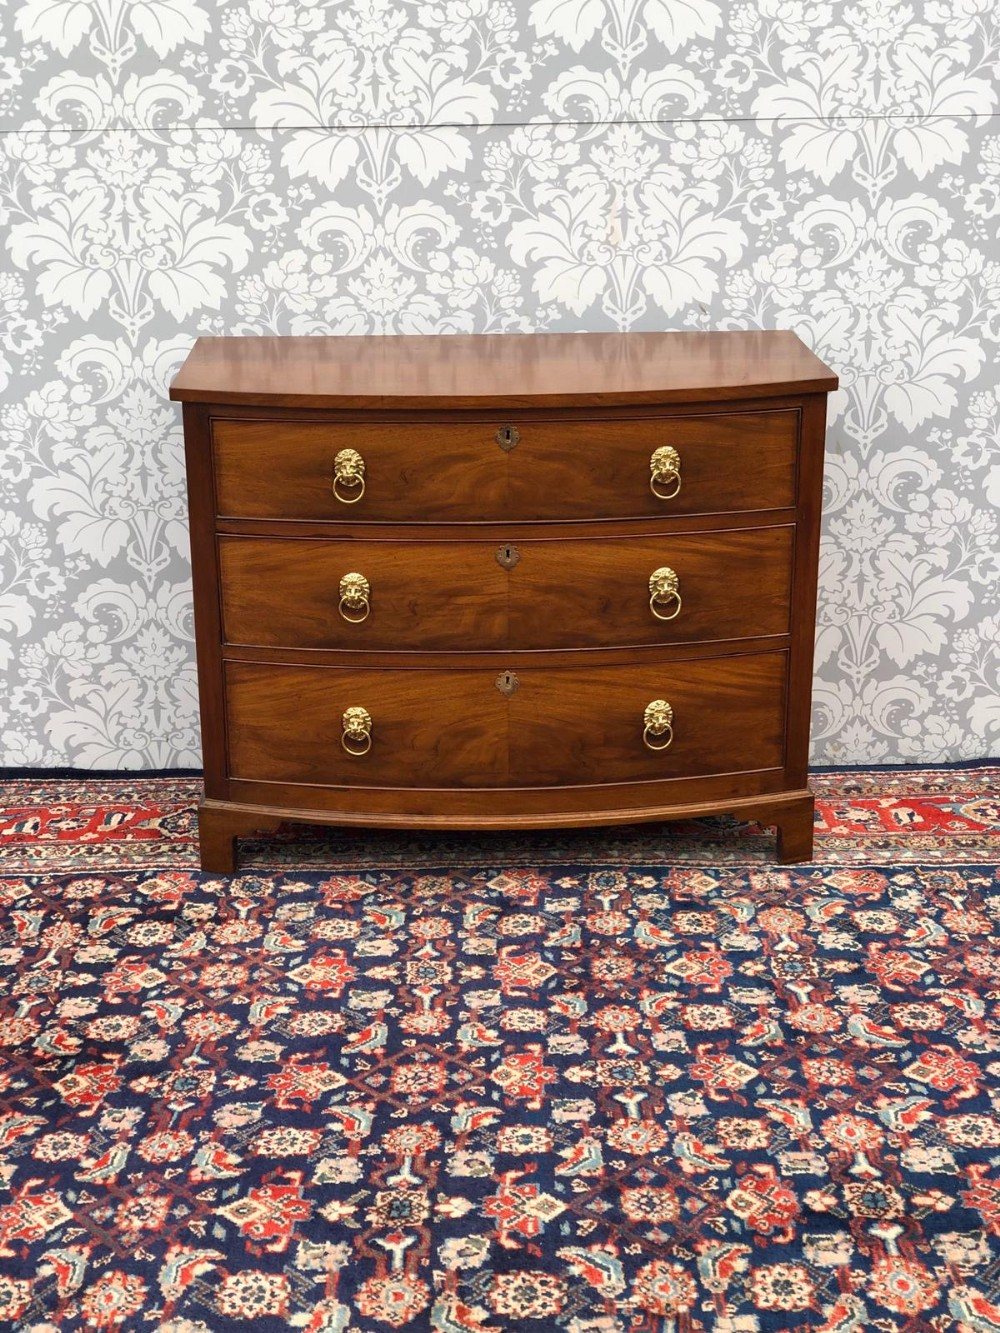 a outstanding quality georgian bow fronted chest of drawers with 3 drawers fully restored superb quality